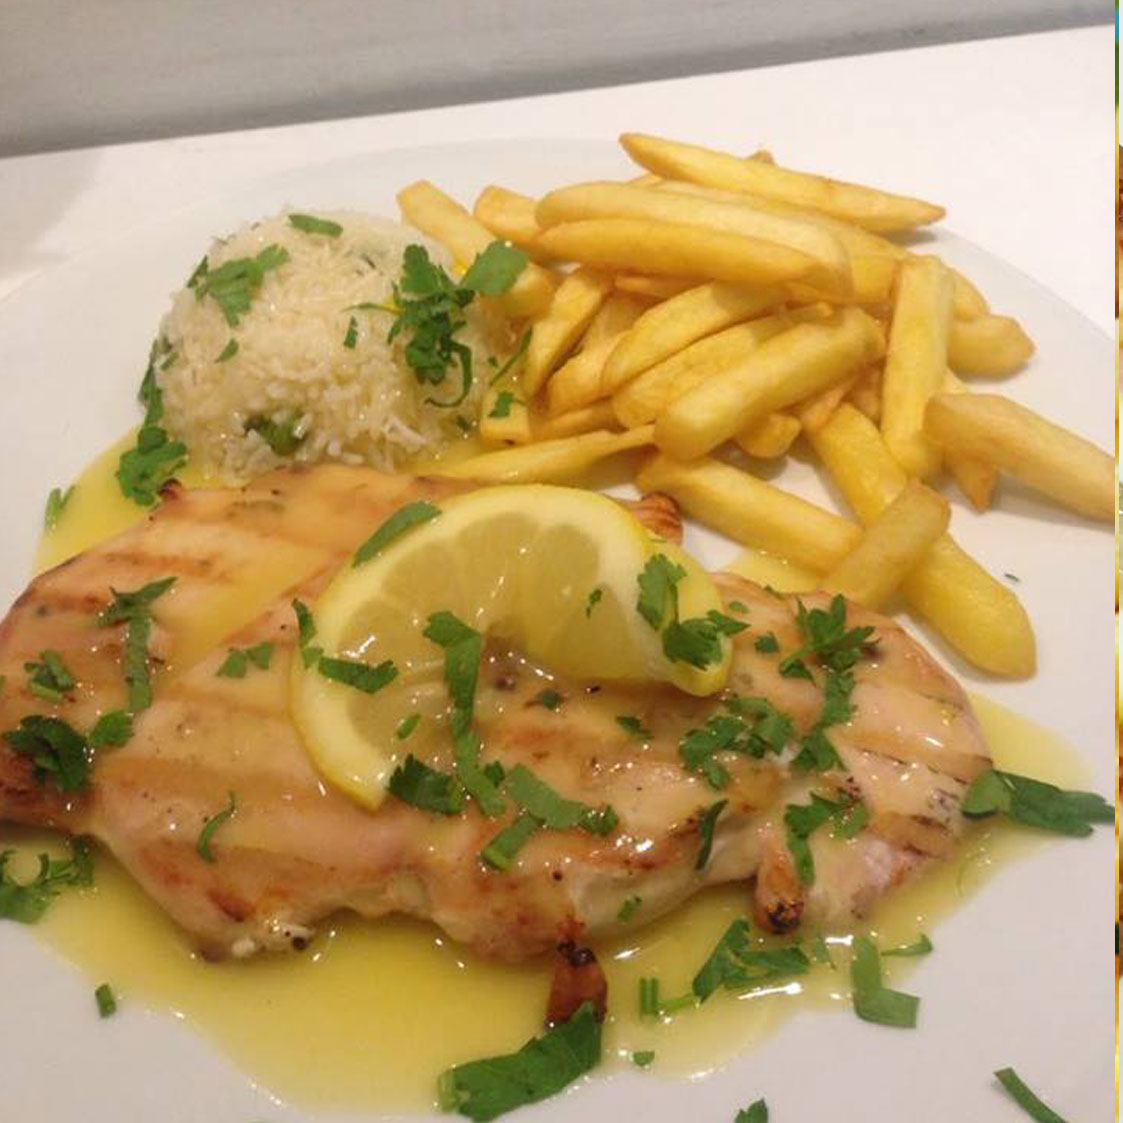 chicken fillet in lemon sauce